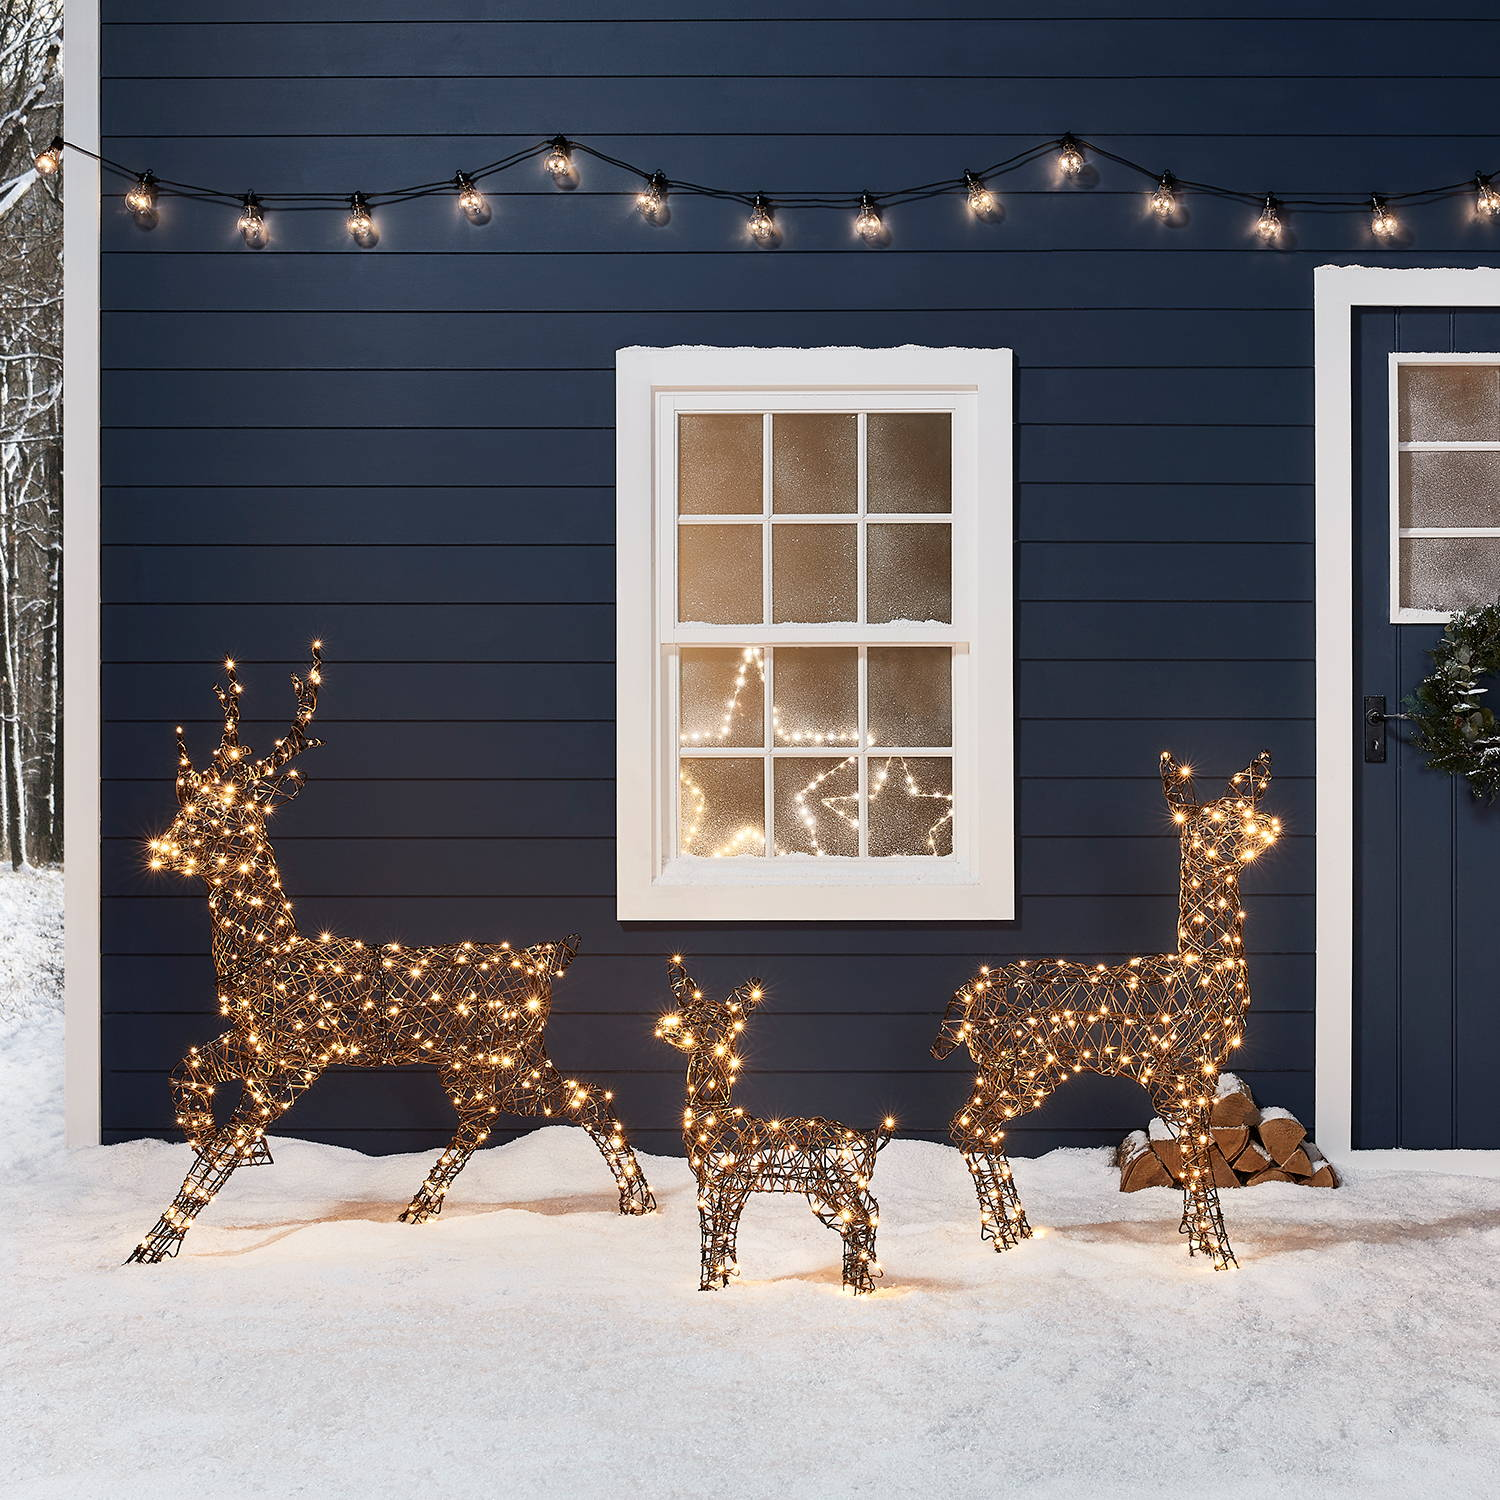 Rattan Light Up Reindeer Family infront of a house decorated for Christmas